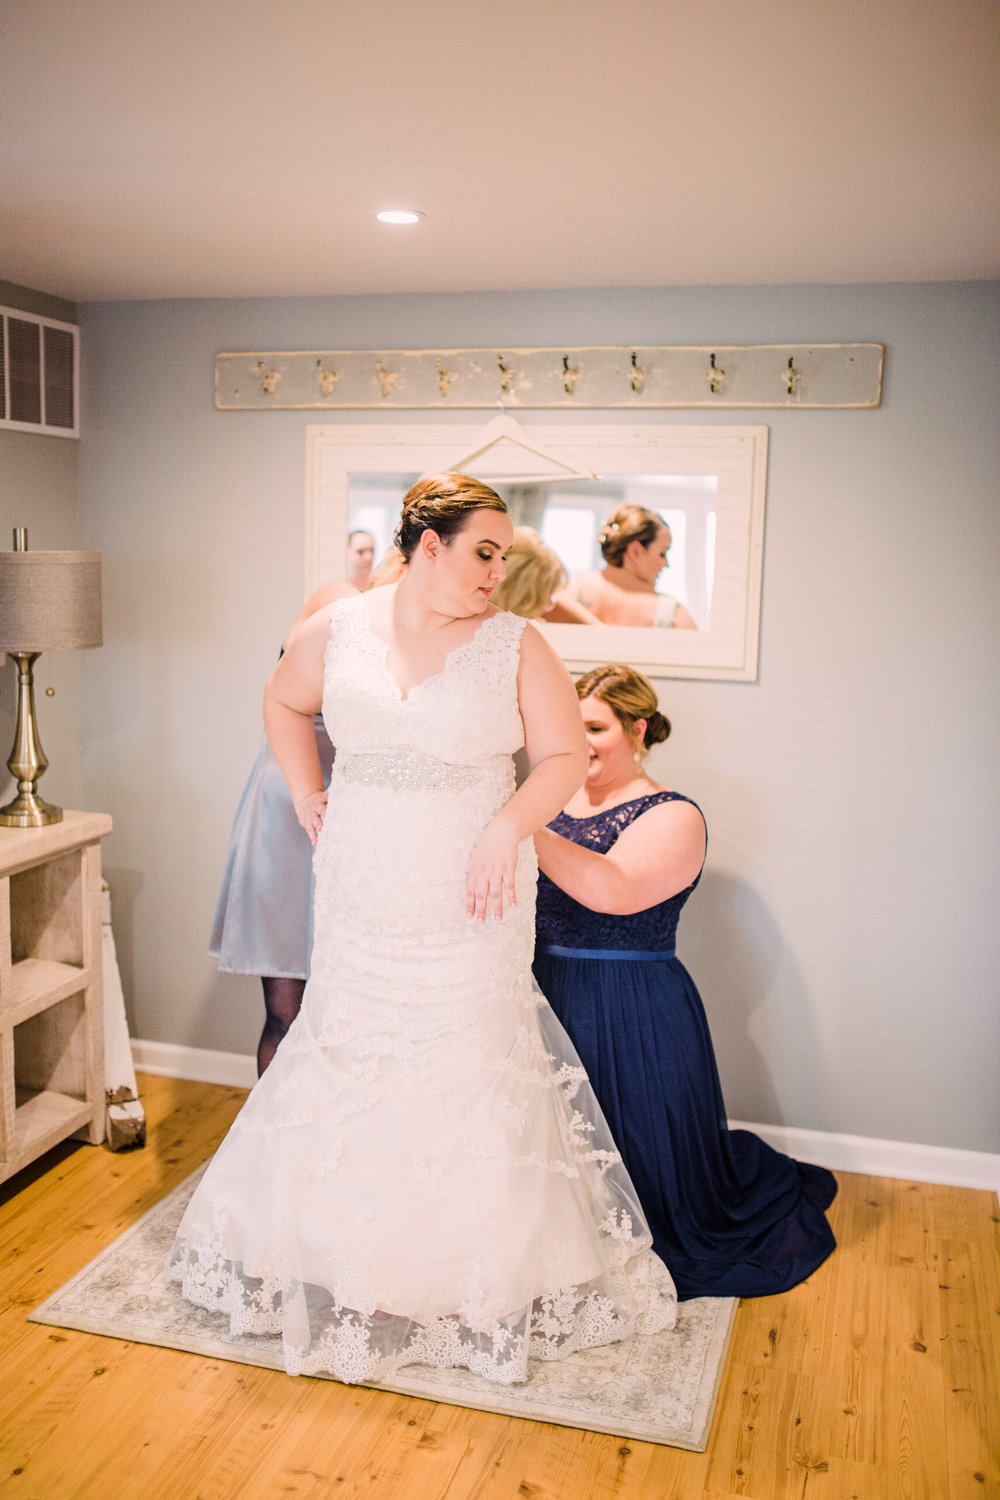 Wedding-Photography_Gatherings-by-Farmhouse-Catering_Nevada-Iowa_bride+getting+ready+with+maid+of+honor-iowa+wedding+photographer.jpg